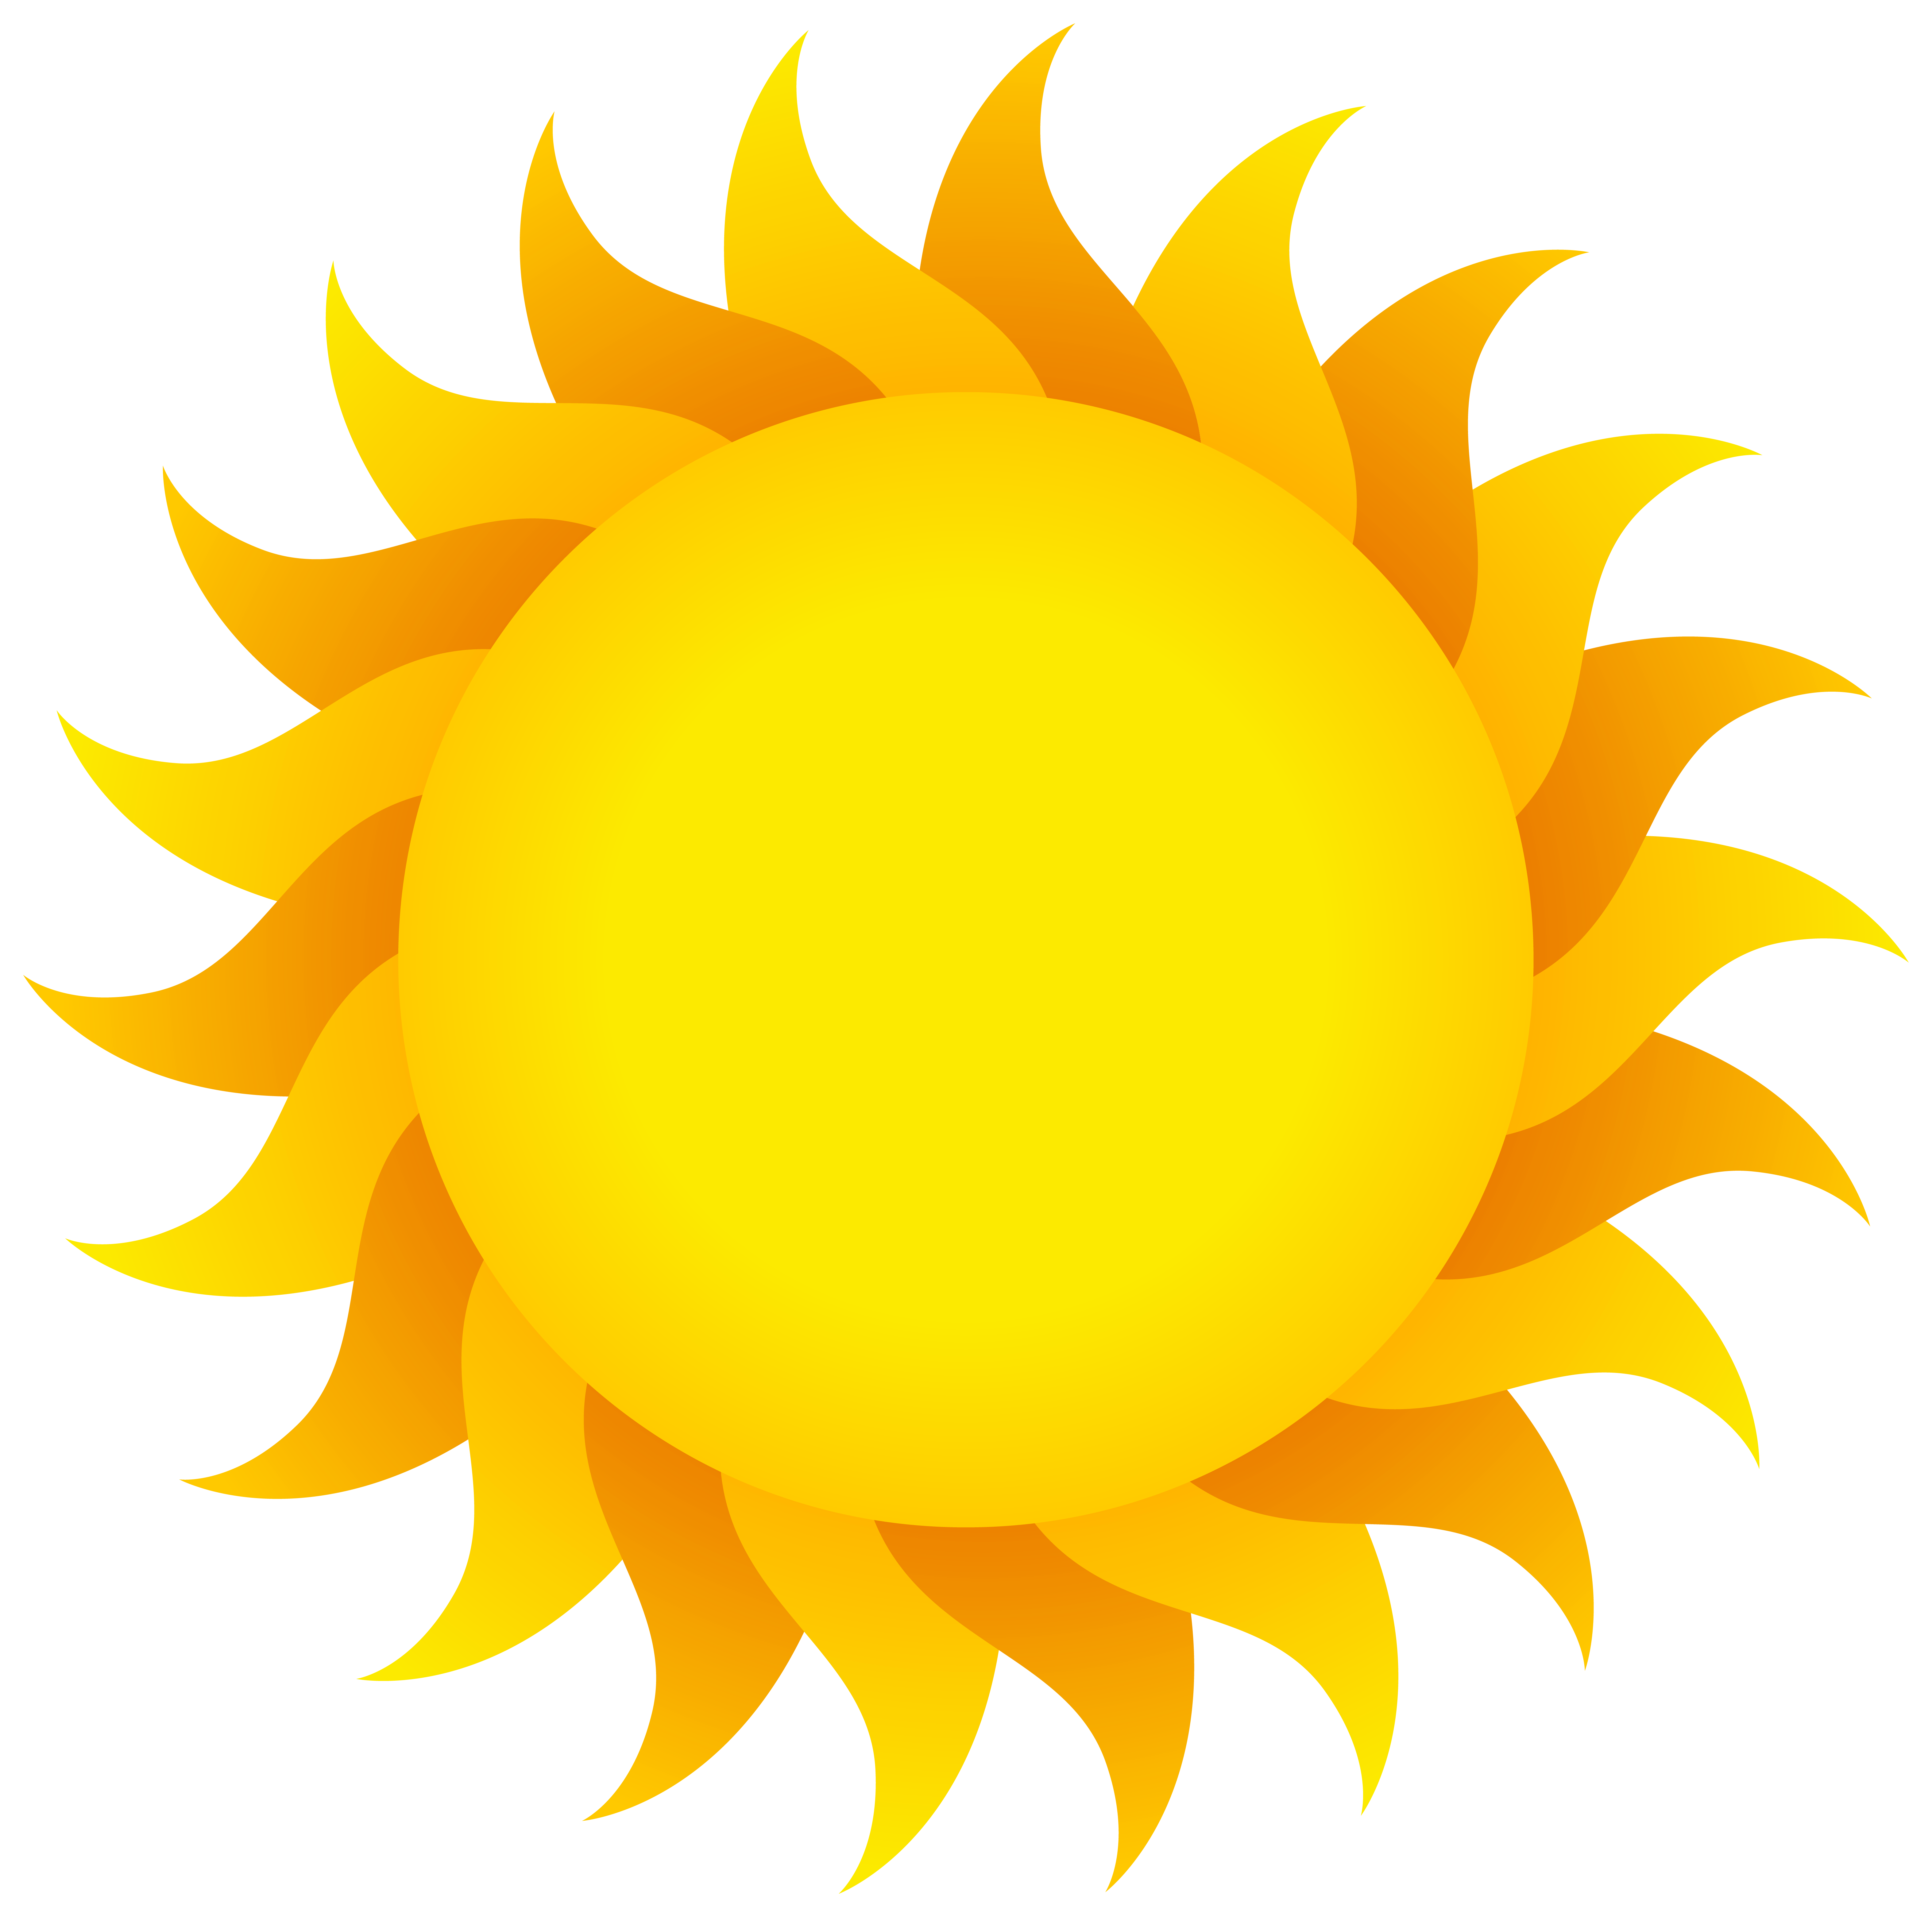 Transparent Sun PNG Clip Art Image | Gallery Yopriceville - High-Quality  Images and - Sun PNG Transparent Background